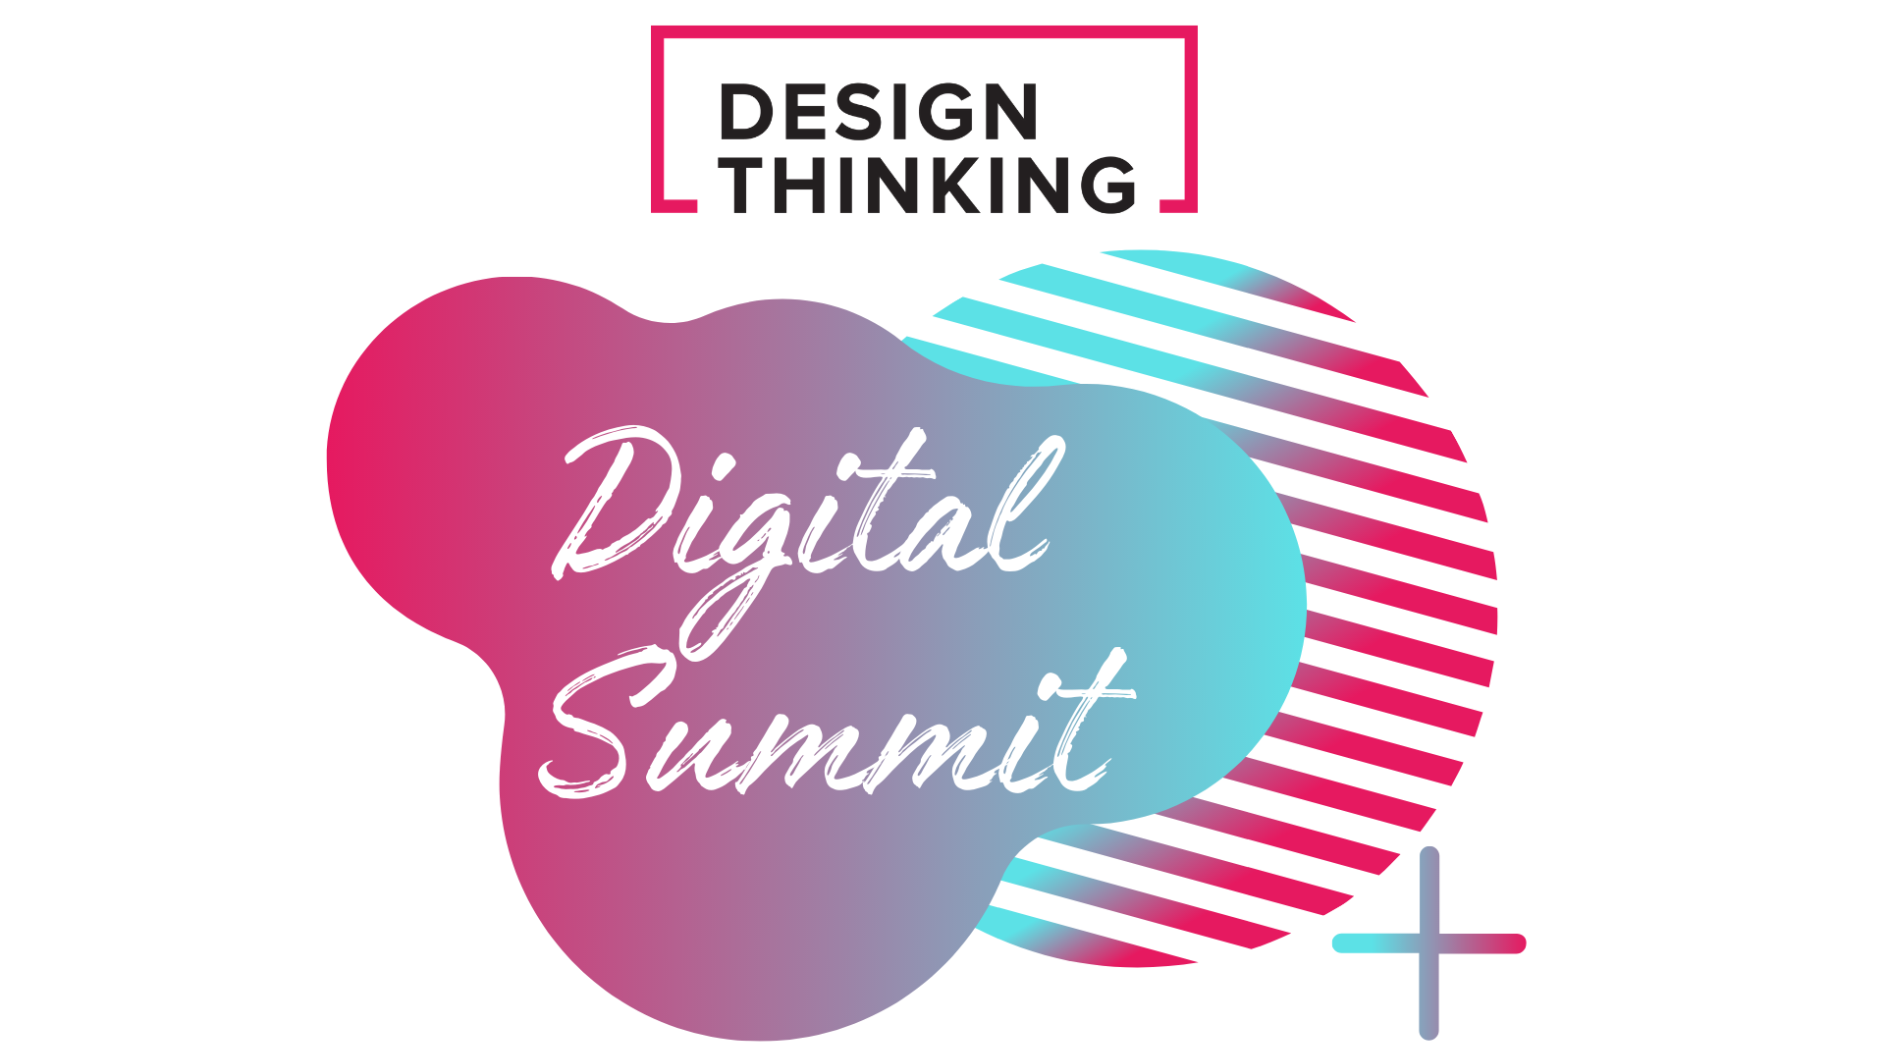 Design Thinking April Digital Summit